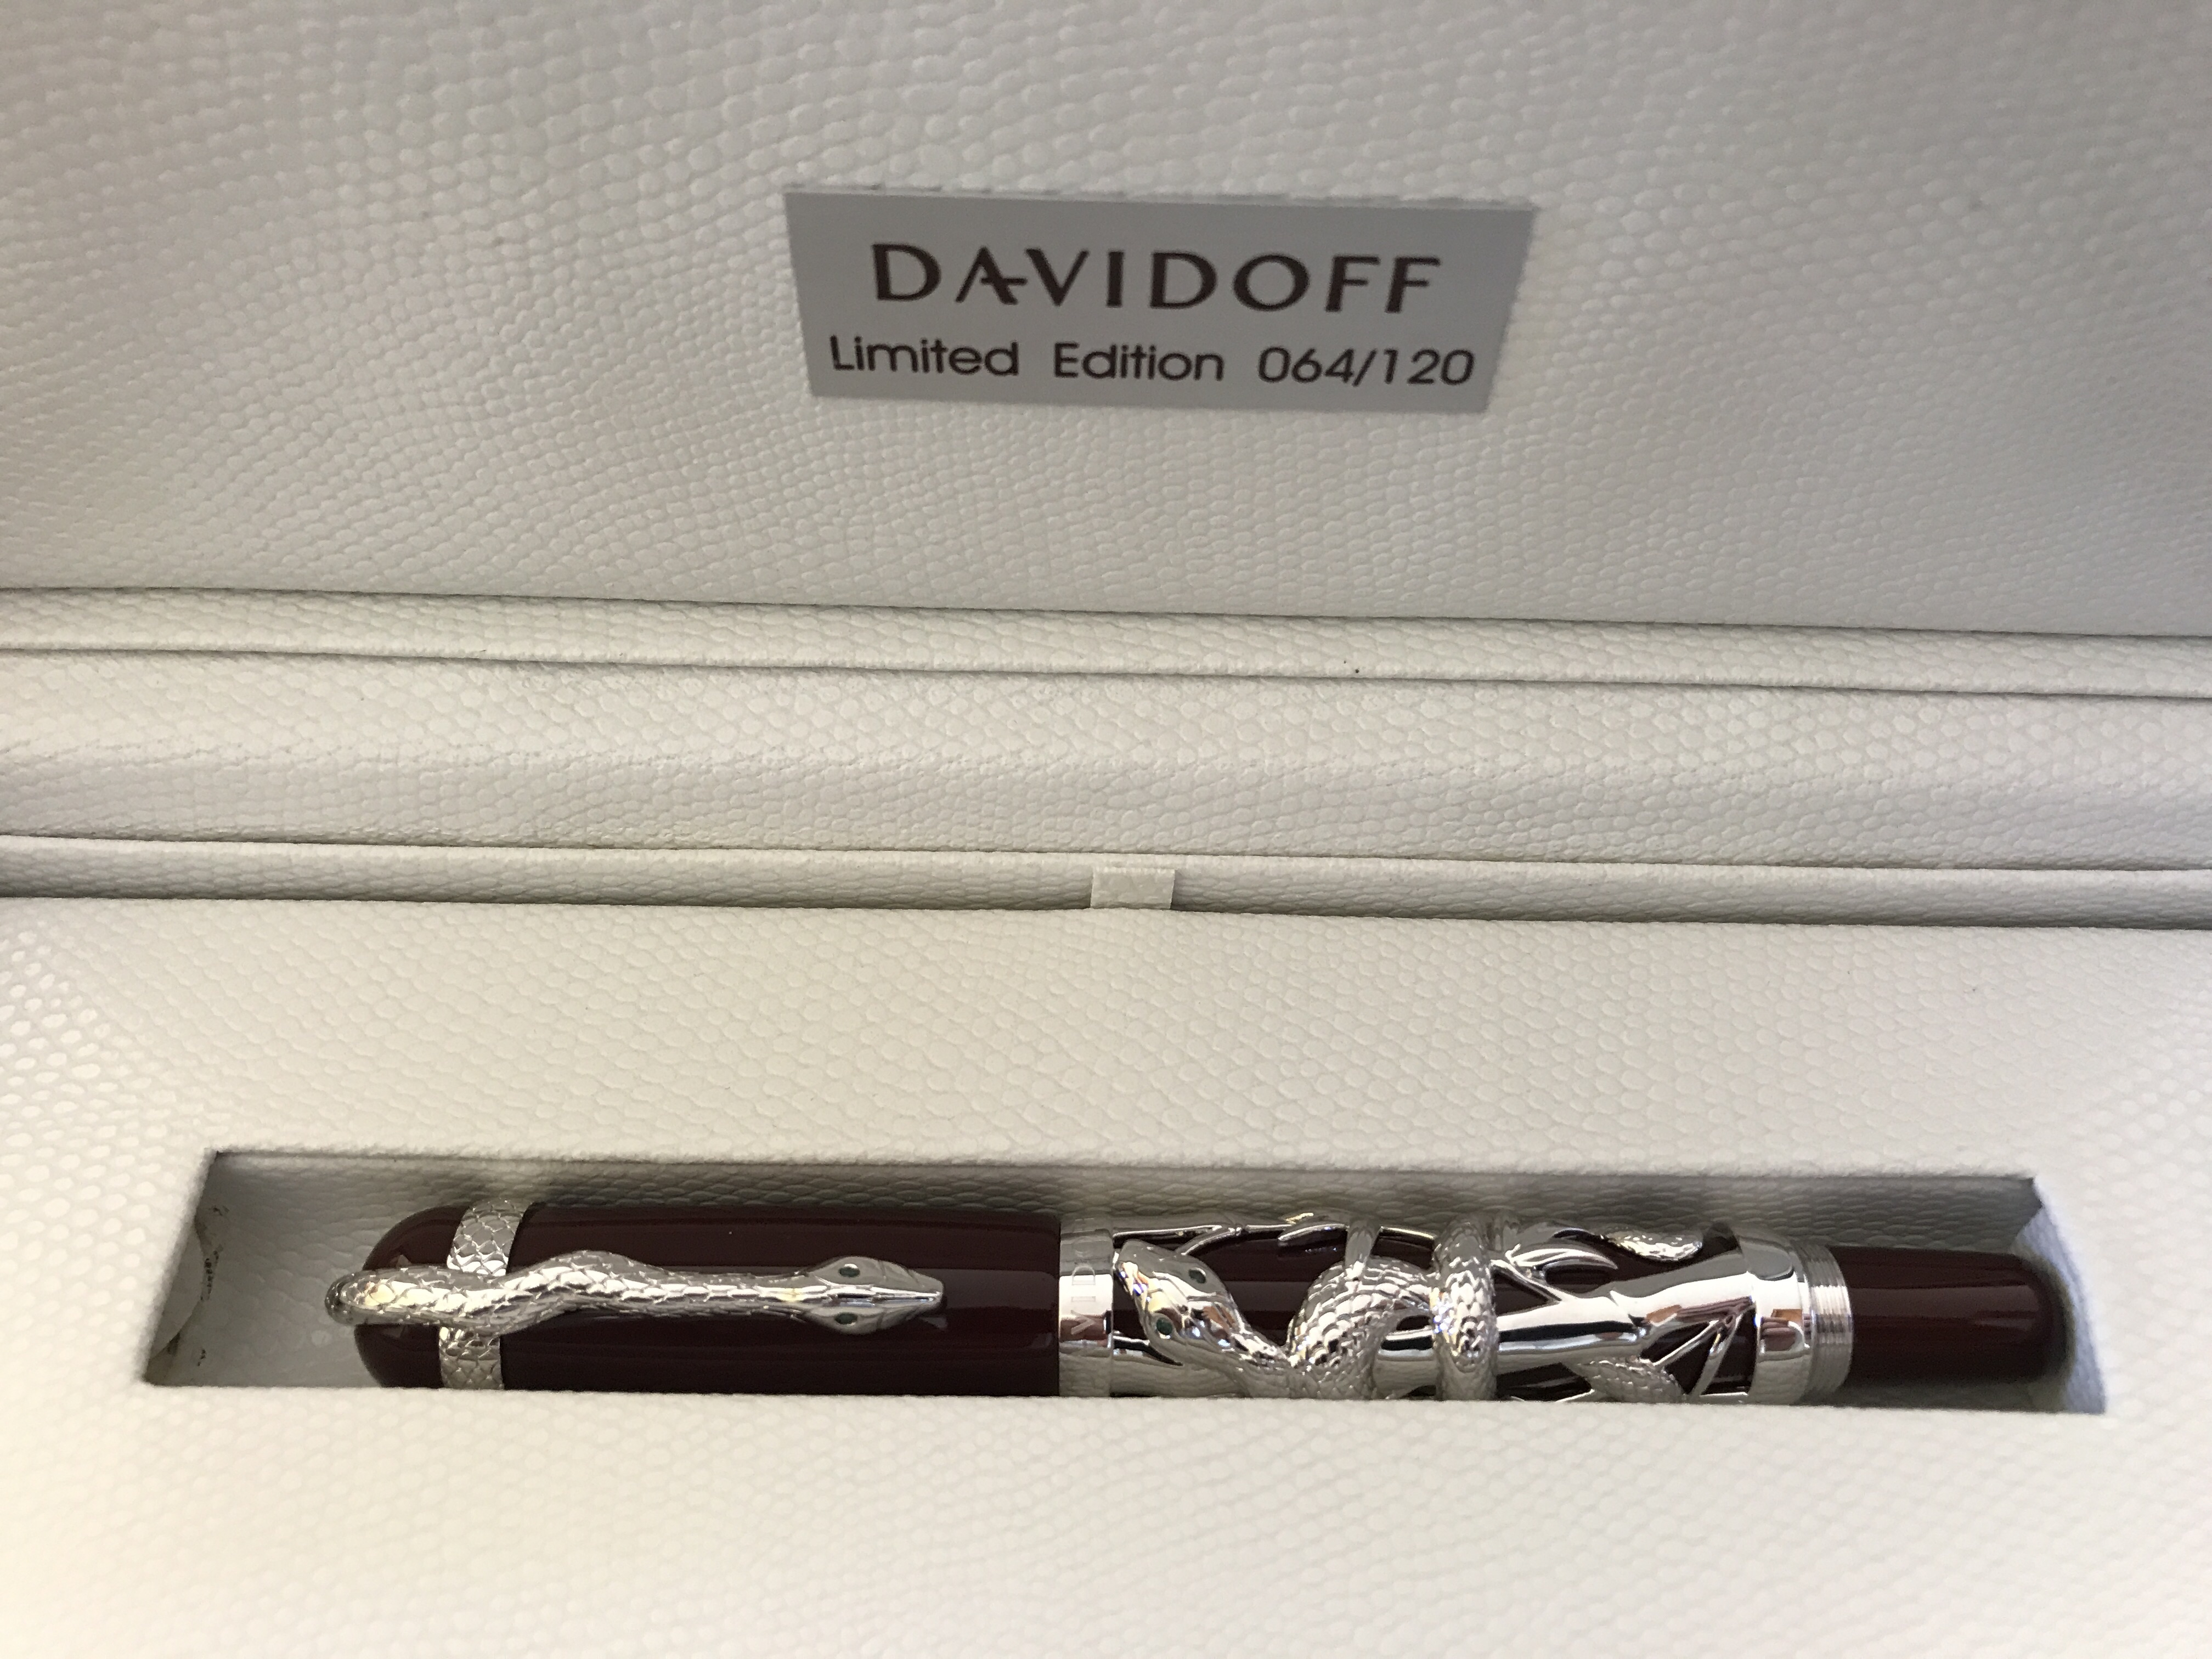 Davidoff Collectible Fountain Pen (Ltd Edition of 120 pieces)